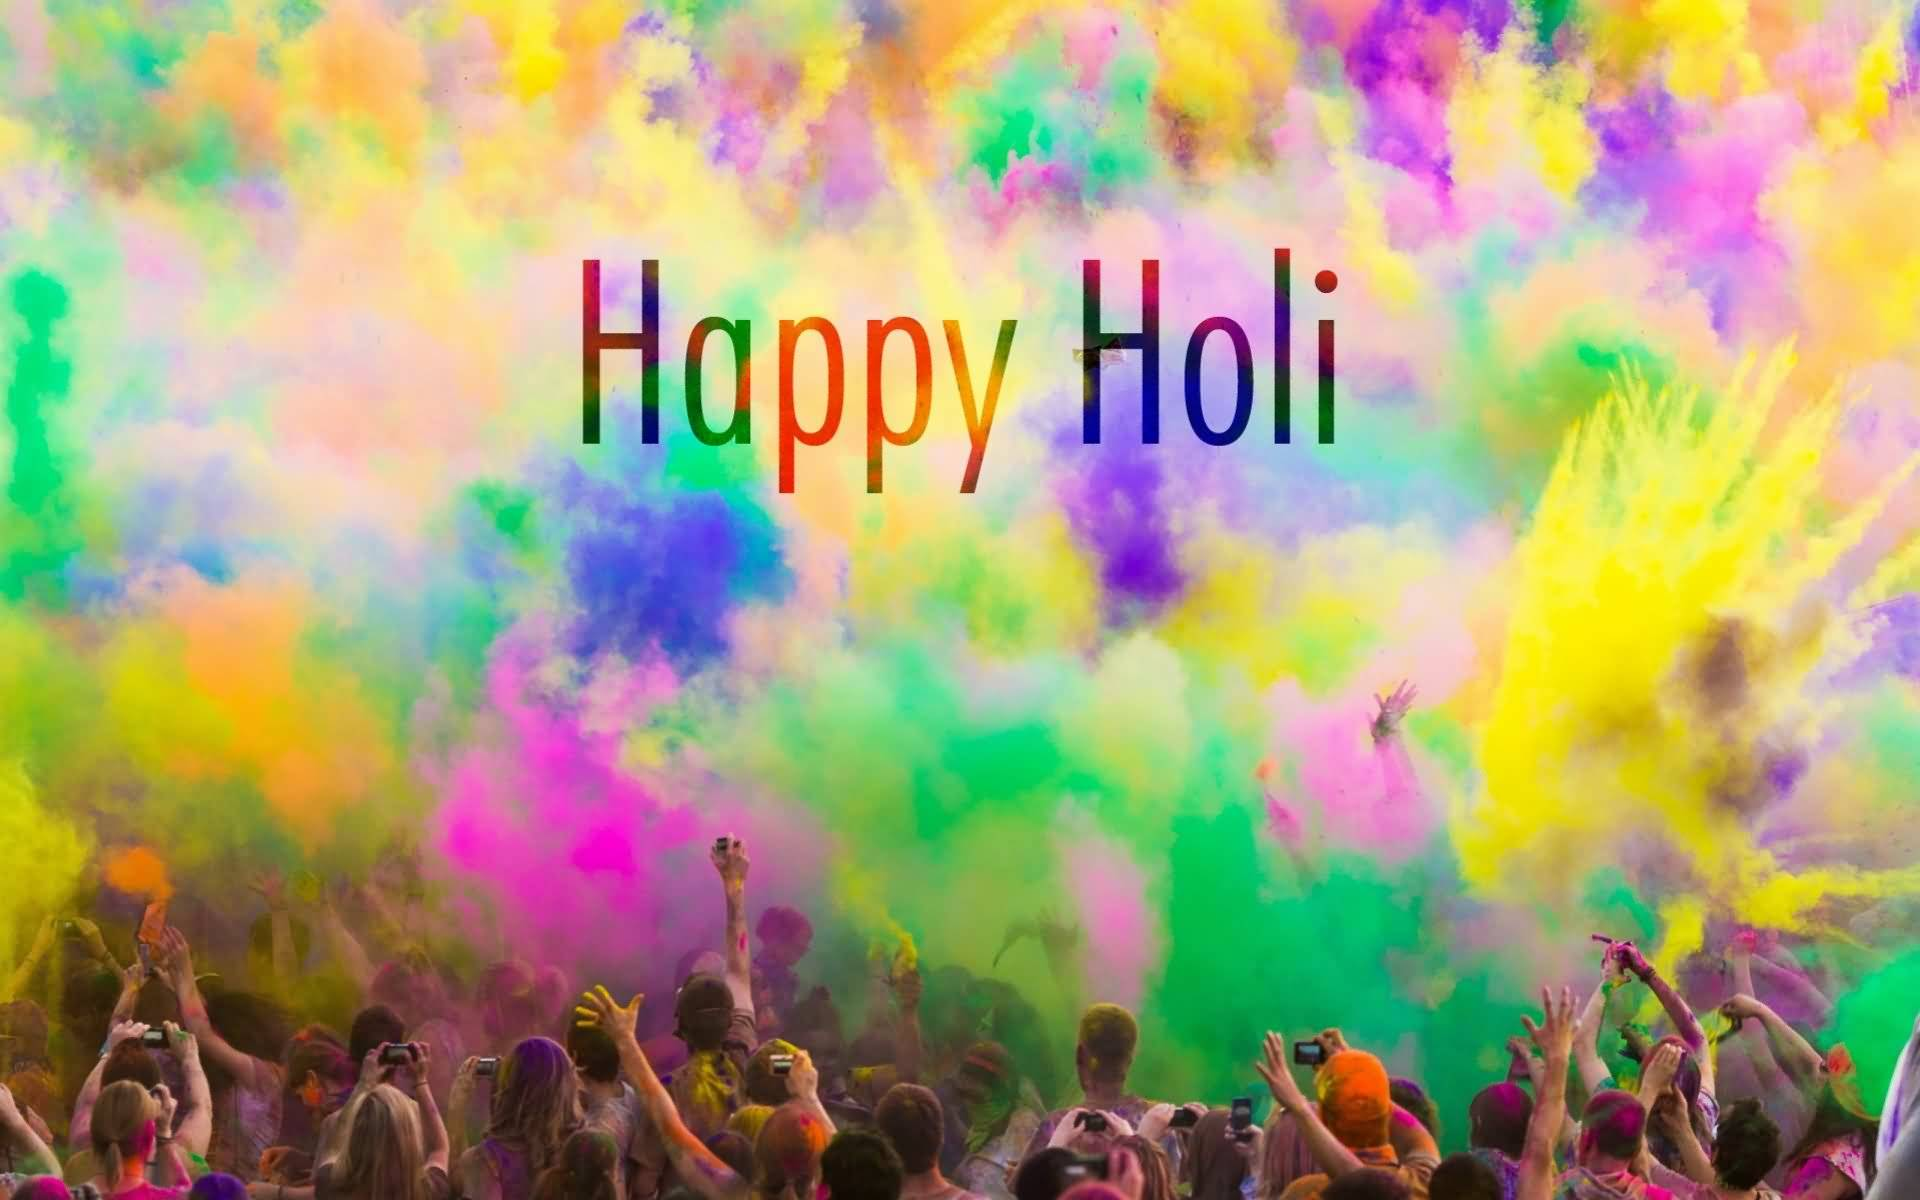 Beautiful Holi Wish